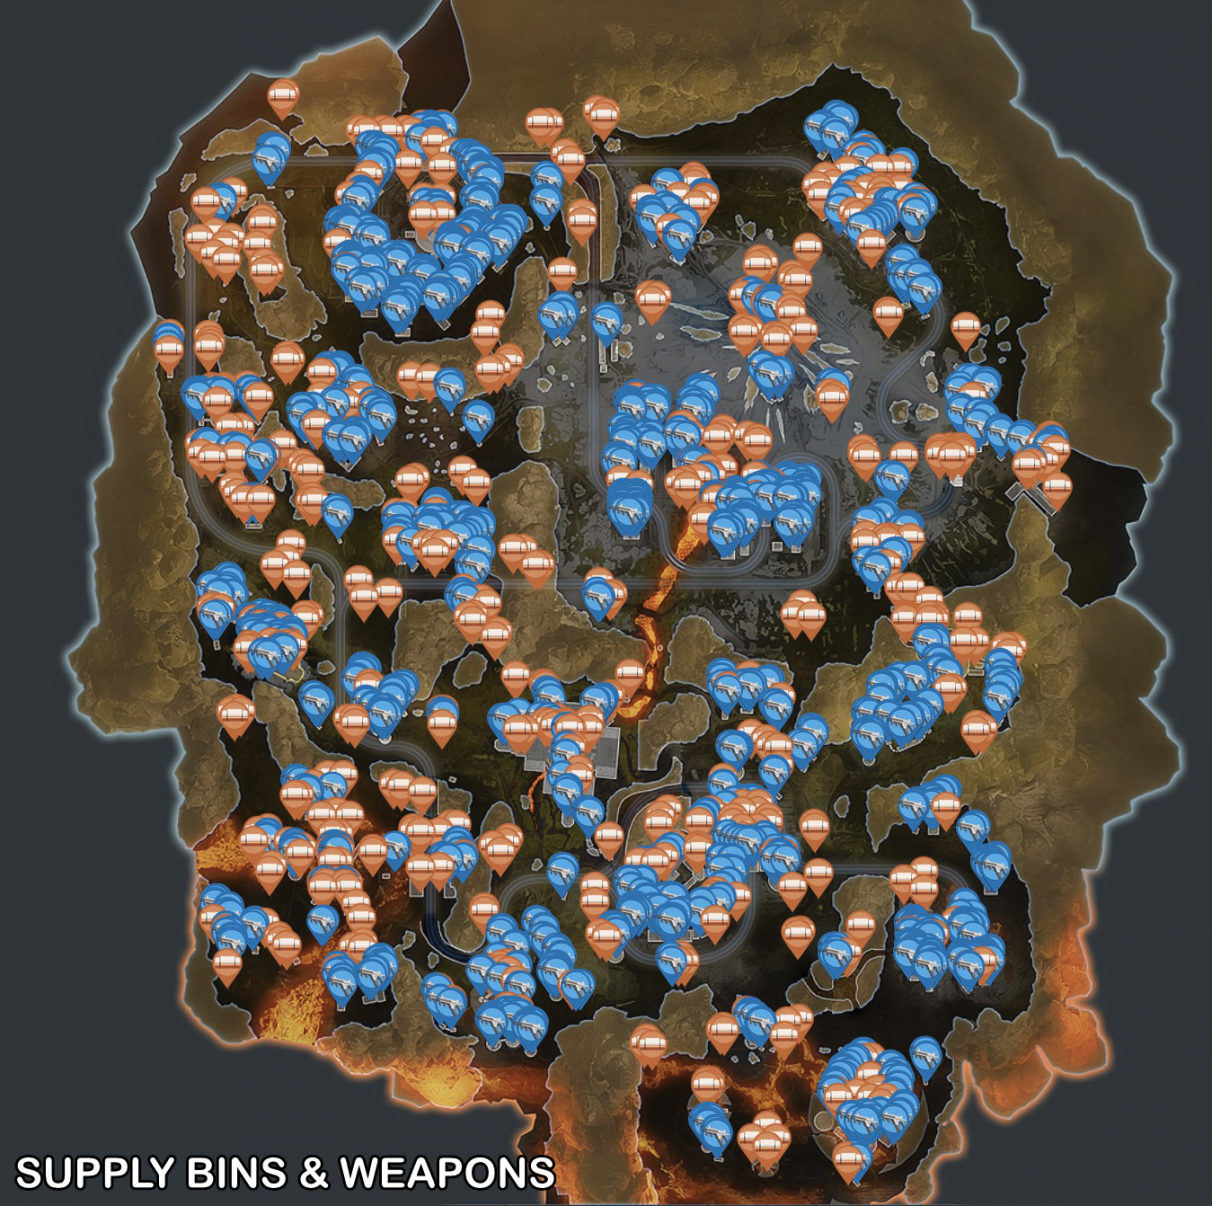 Apex Legends Season 4 map - Supply Bins & Weapons